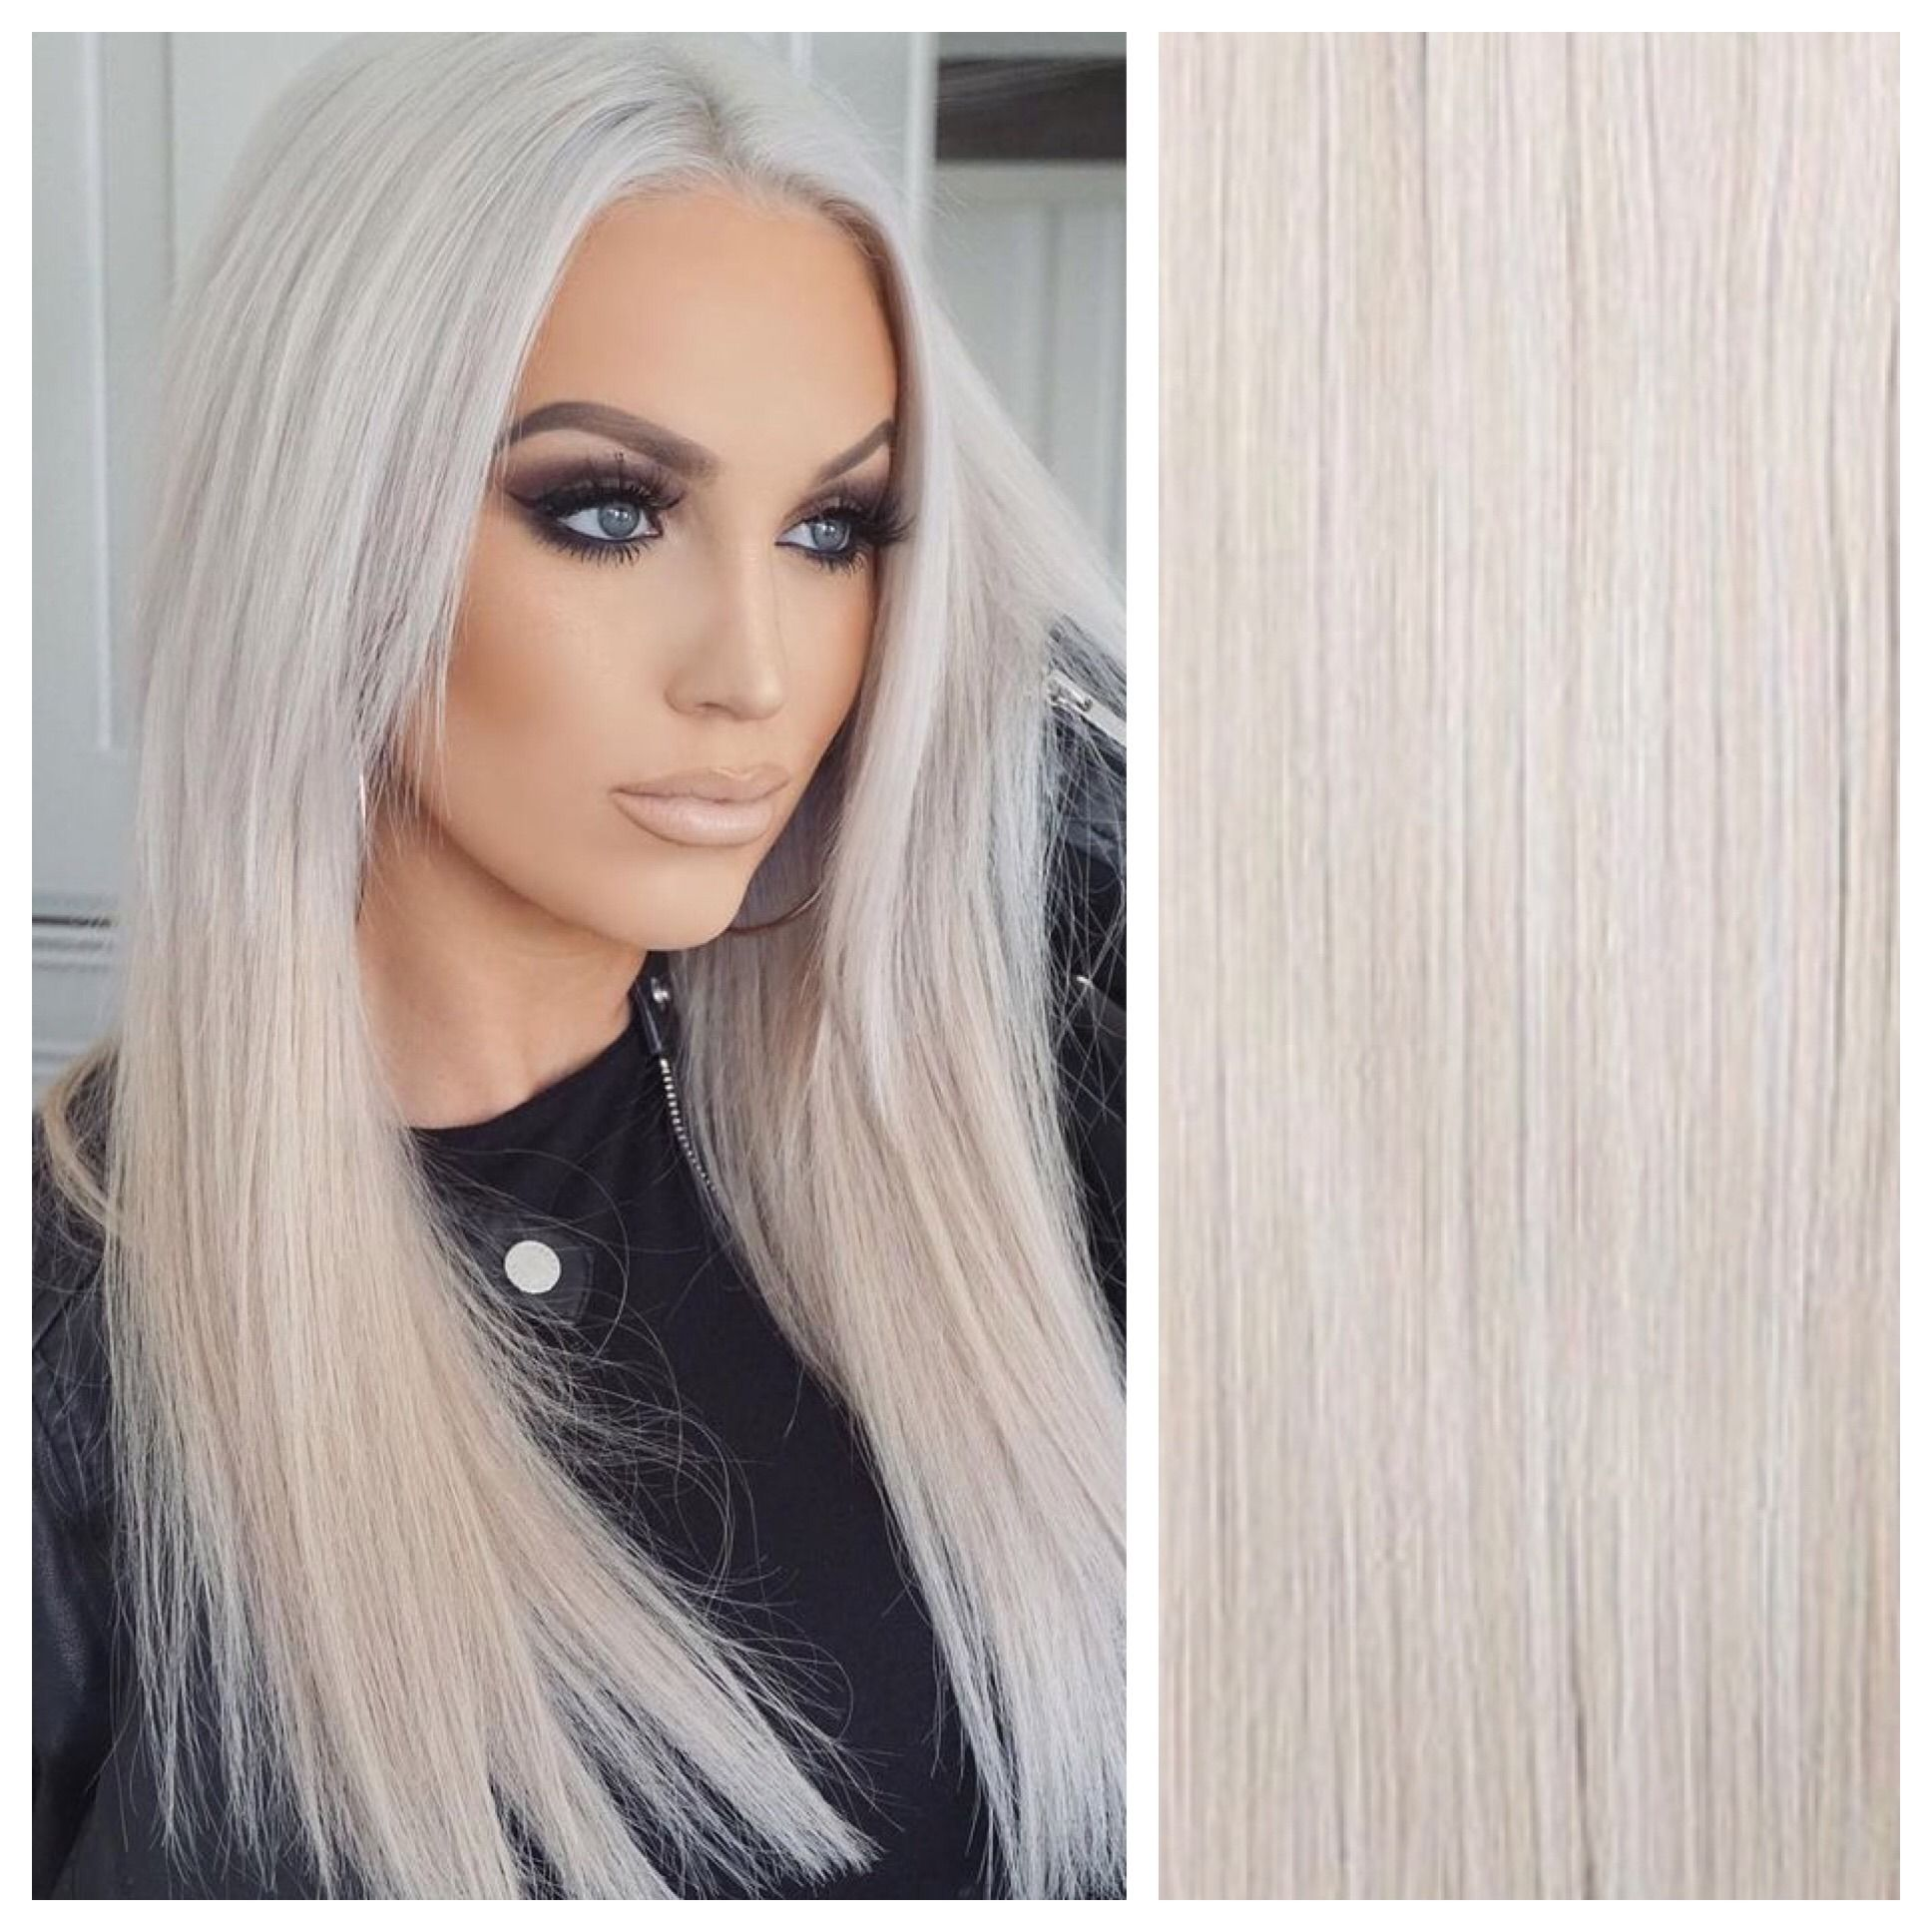 Icy Blonde Clip In Hair Extensions 26 Double Weft 200g Remy Human